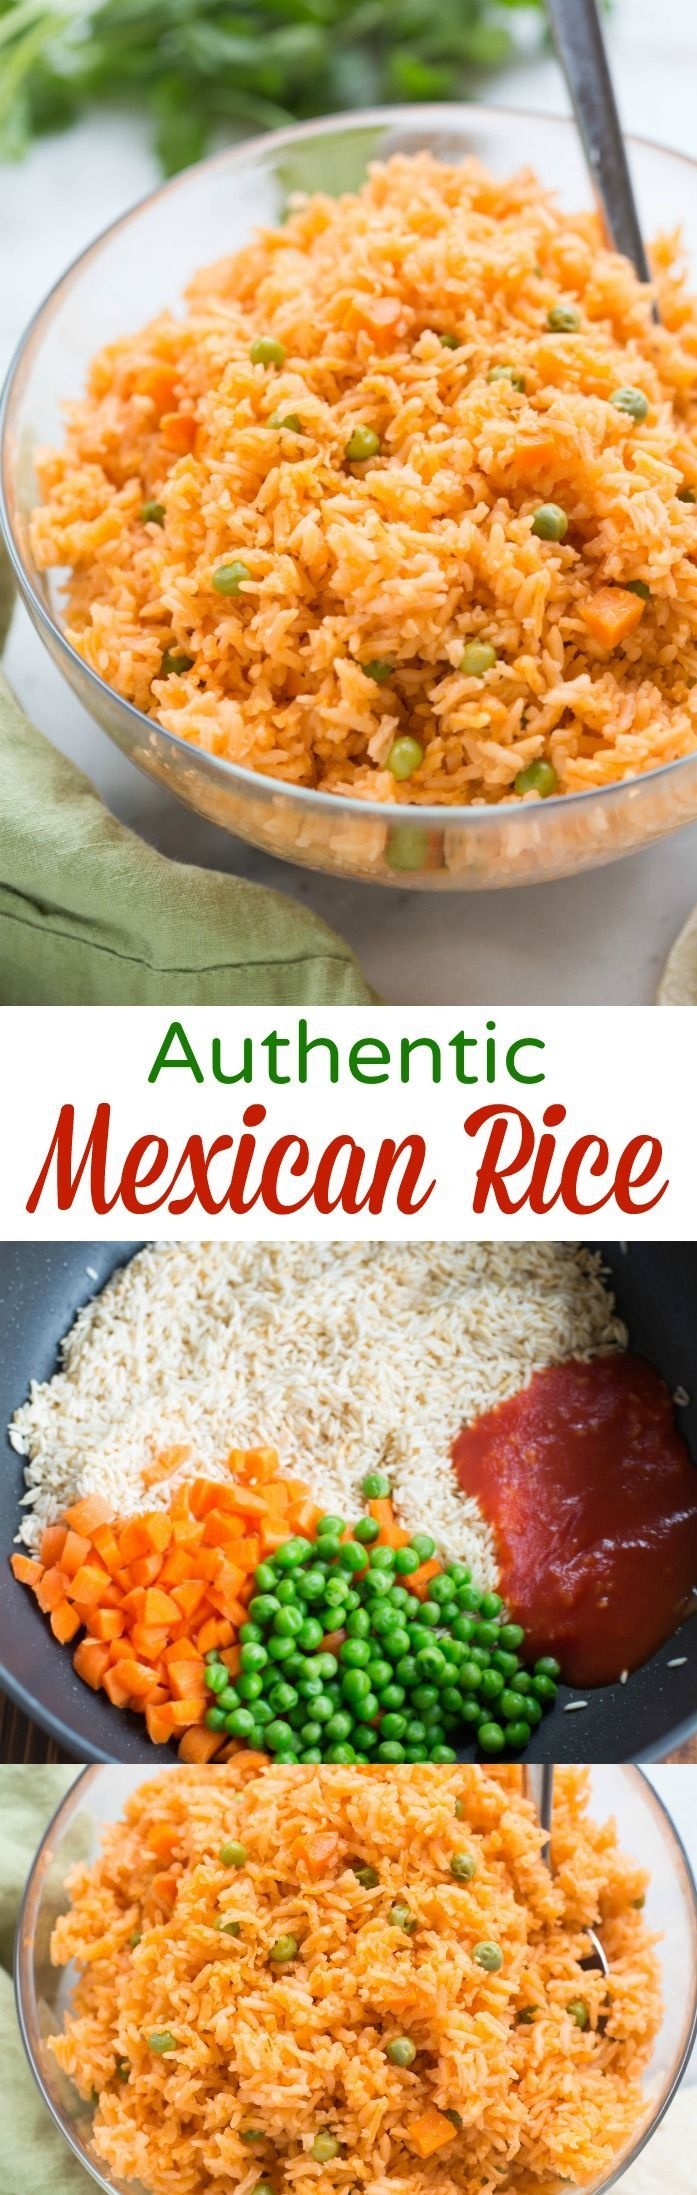 Photo of Authentic Mexican rice